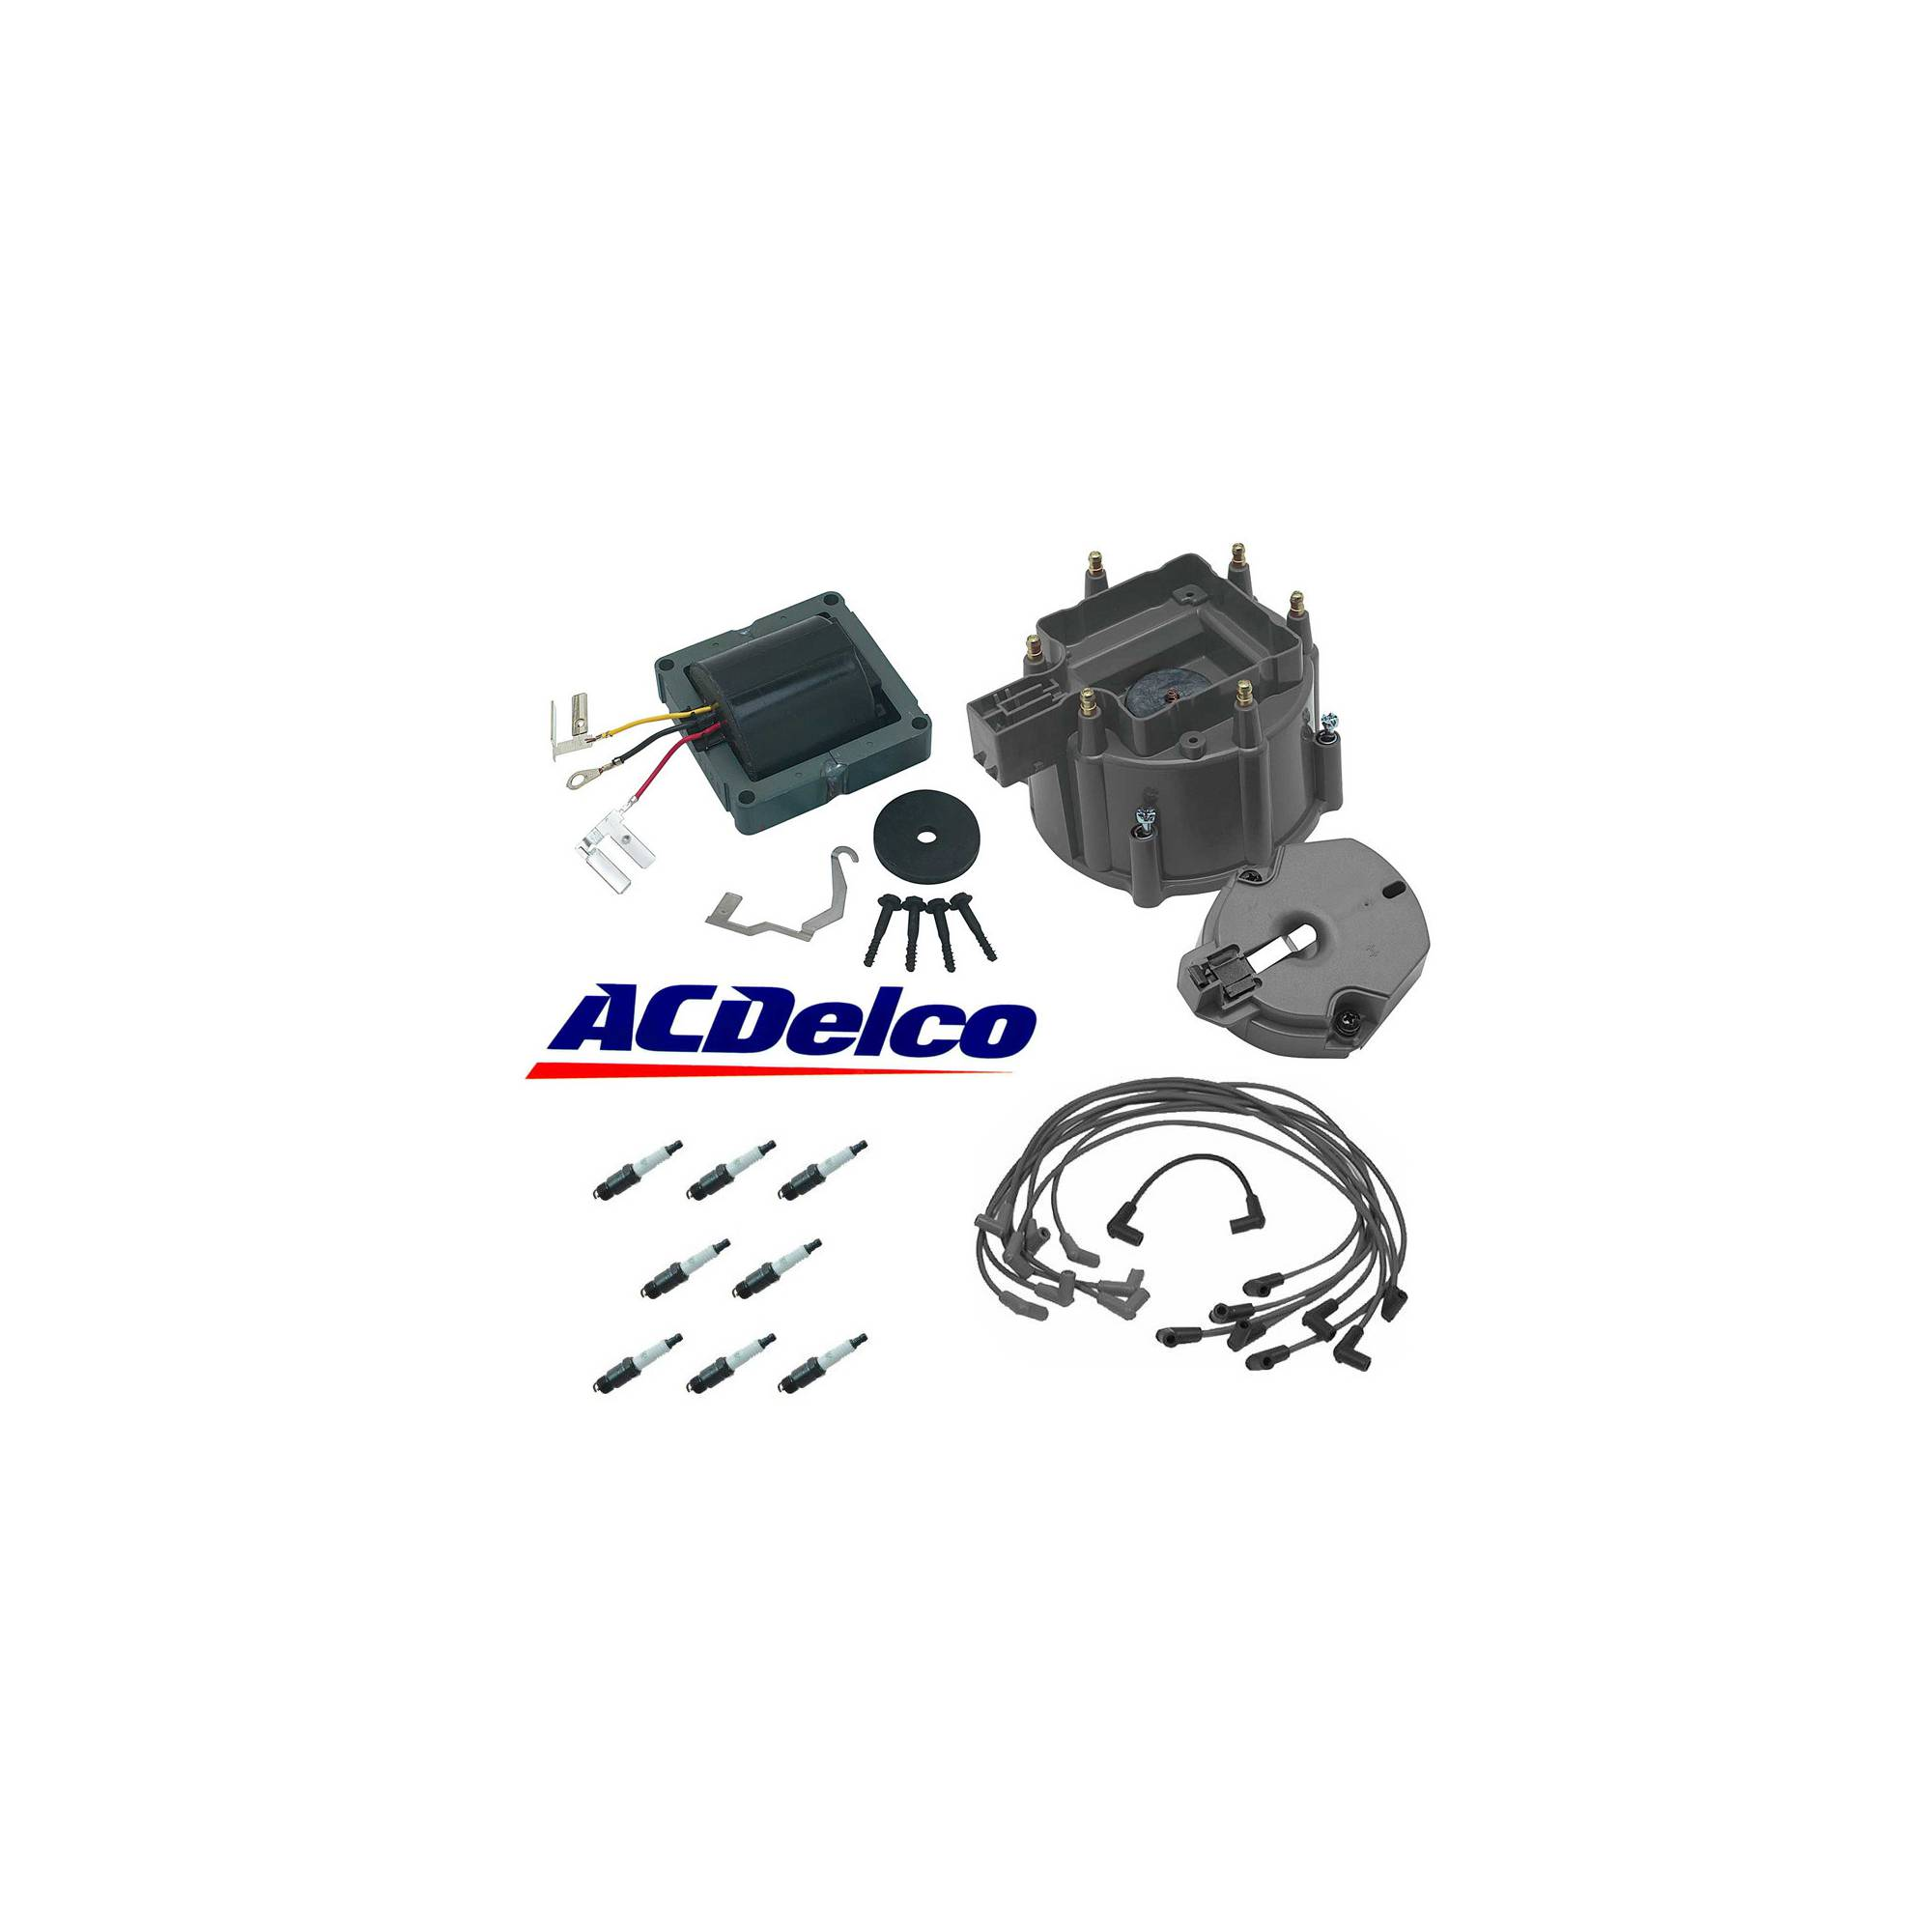 [DIAGRAM_5UK]  Eckler's Premier Products 57371437 Chevy AC Delco HEI Distributor Tune Up  Kit - Walmart.com - Walmart.com | Delco Hei Wiring Harness |  | Walmart